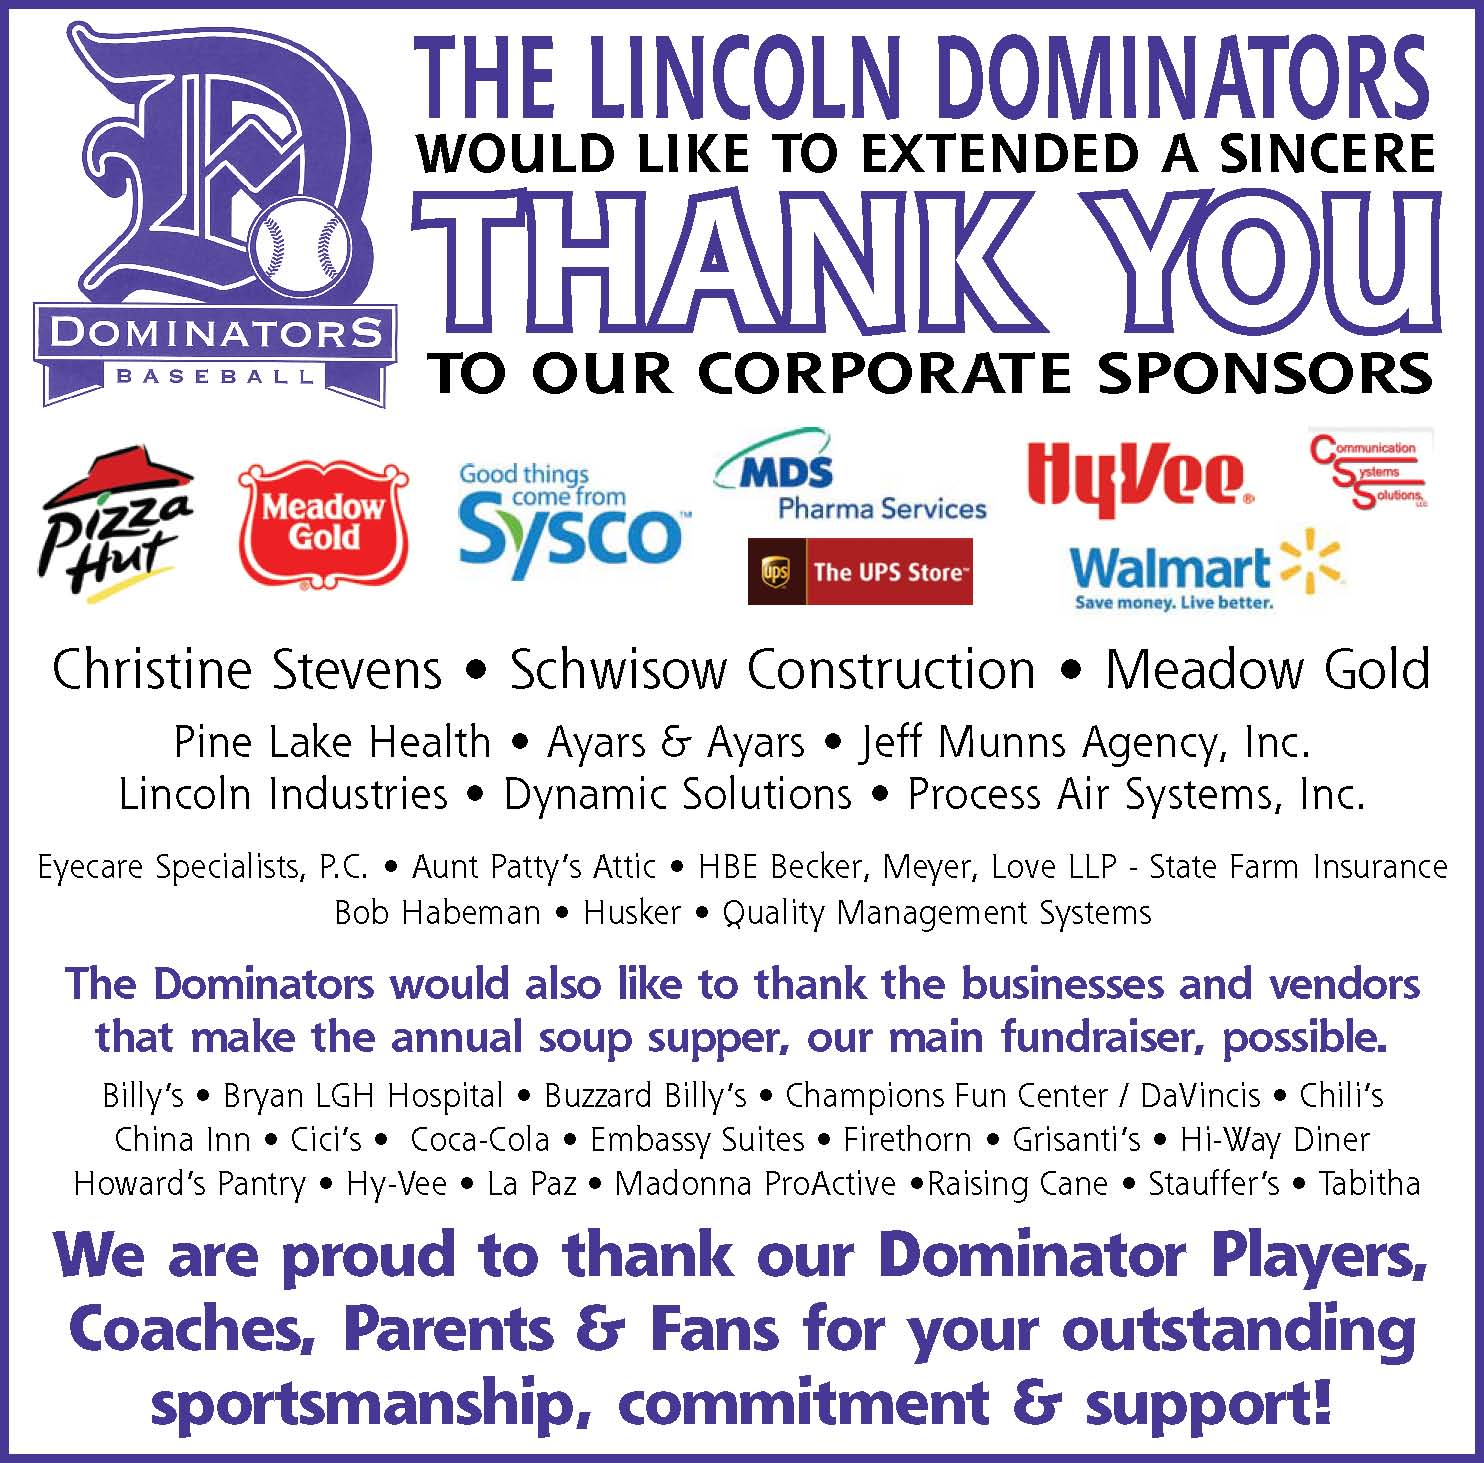 Thank you 2009 sponsors!